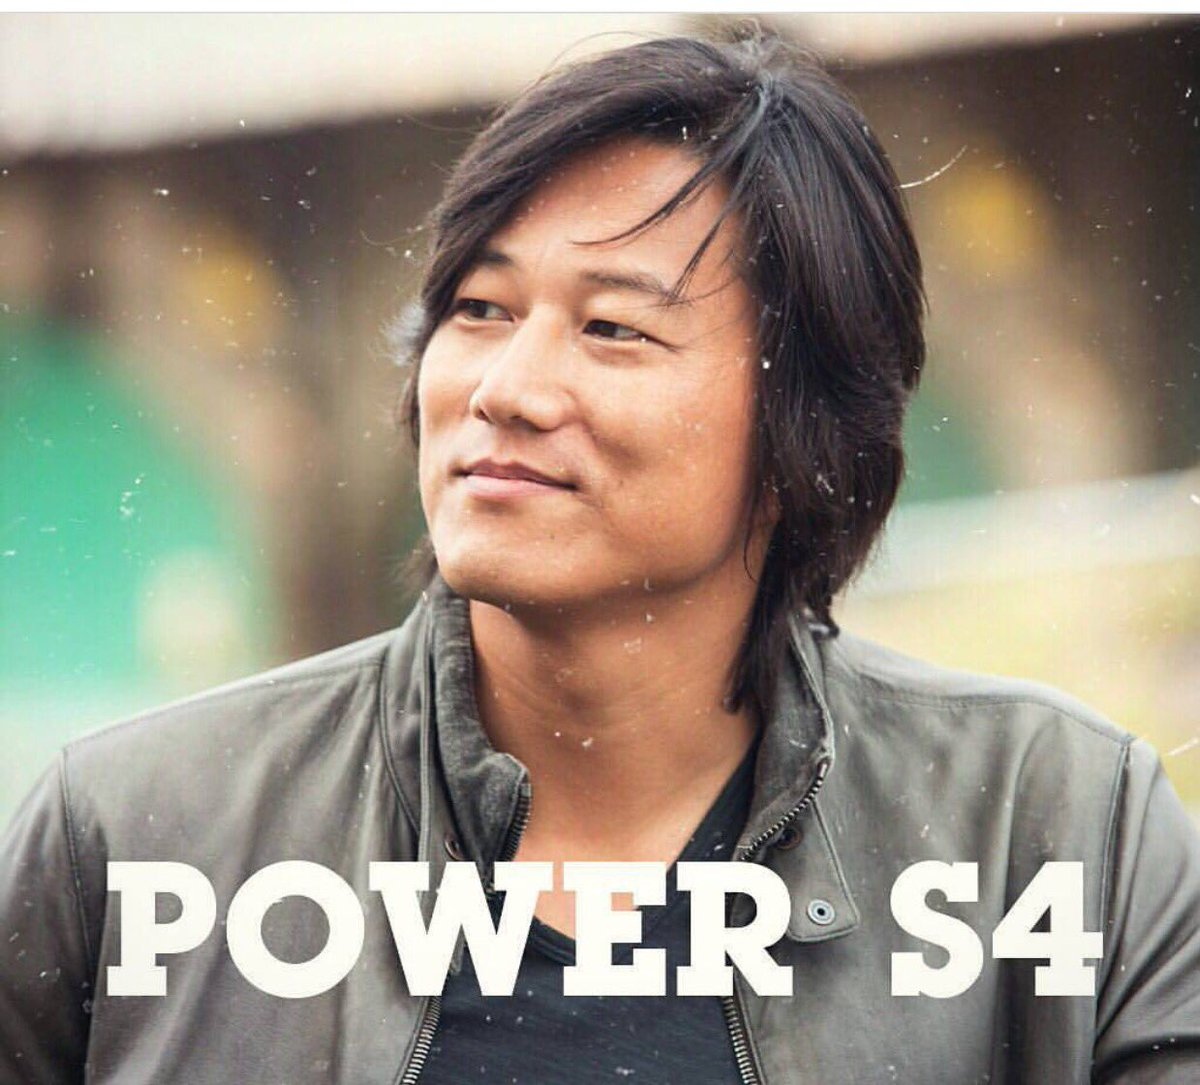 Welcome to the team @sungkang